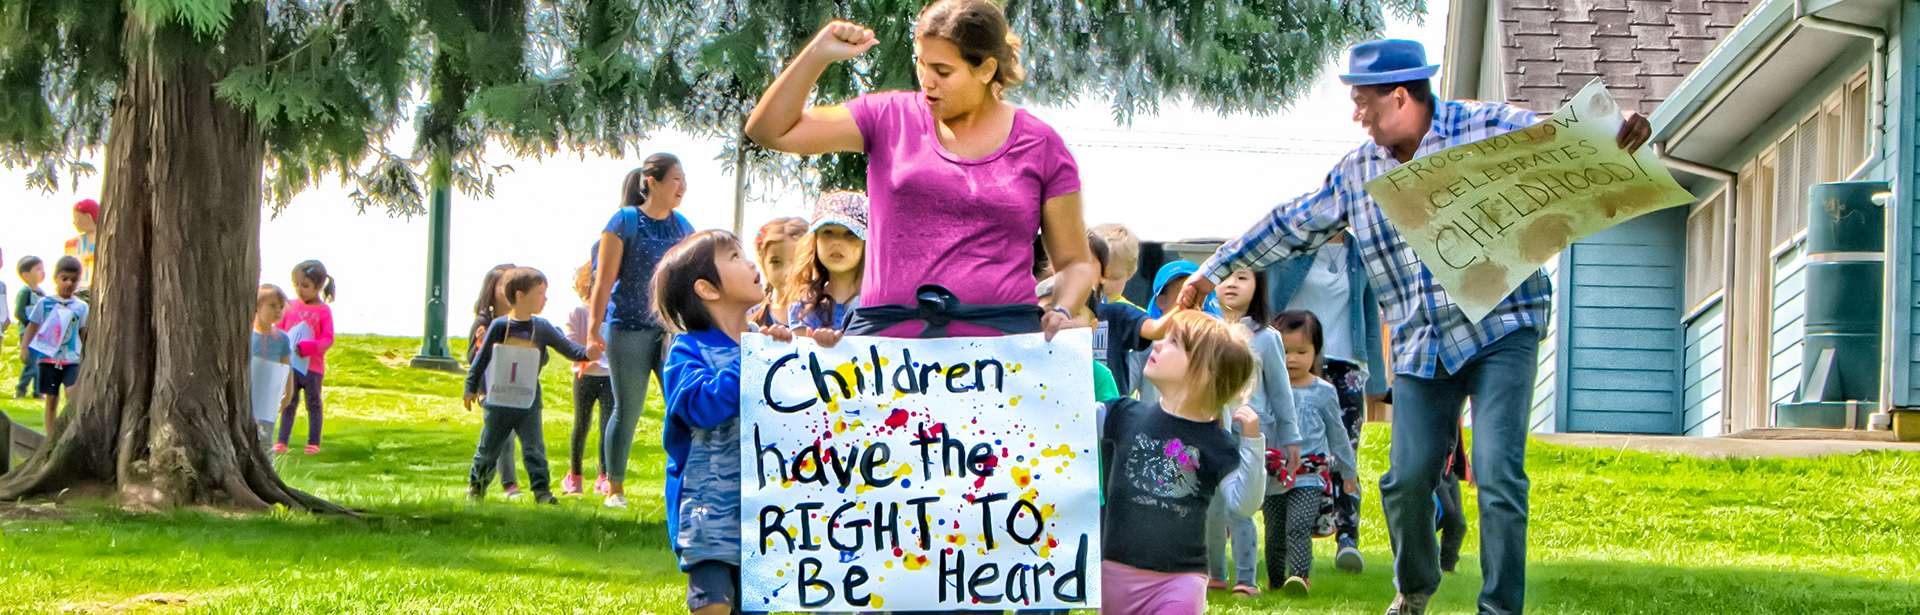 "A group of childern and adults with a banner that reads, ""Children have the right to be heard"""